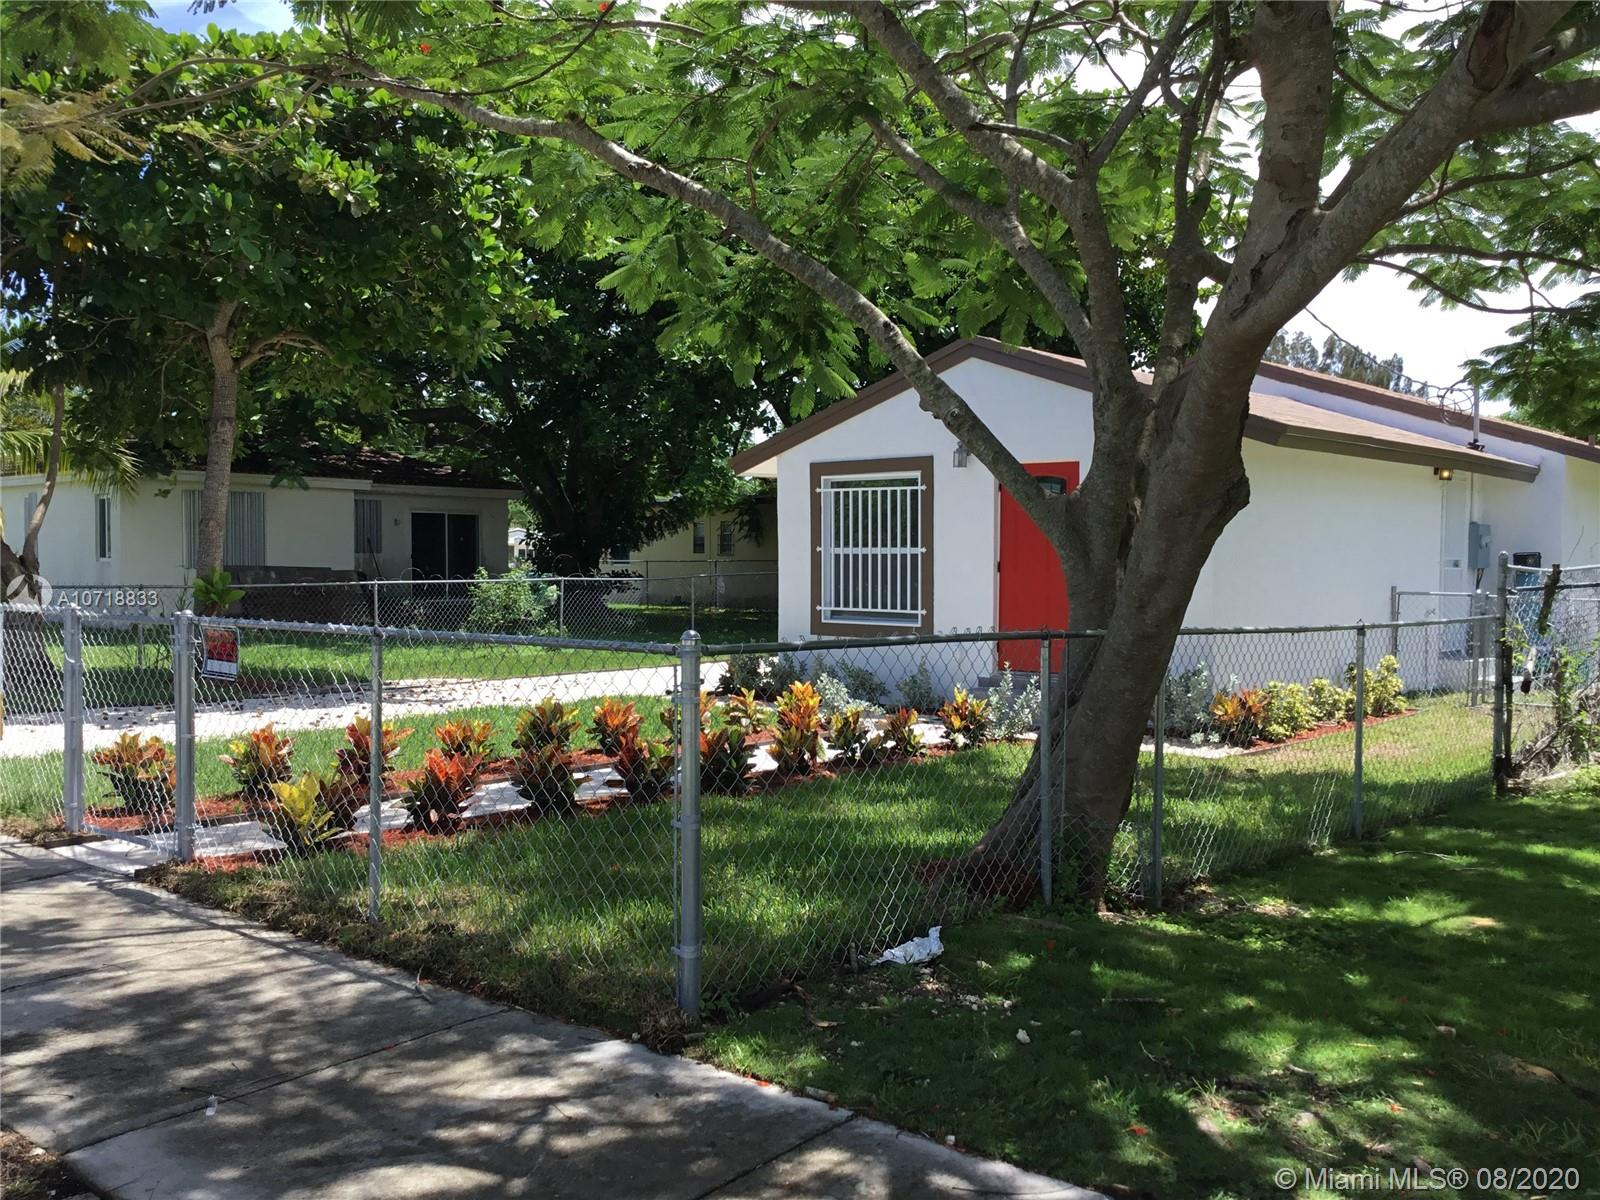 17821 SW 103rd Ave, Miami, Florida 33157, 4 Bedrooms Bedrooms, ,2 BathroomsBathrooms,Residential,For Sale,17821 SW 103rd Ave,A10718833